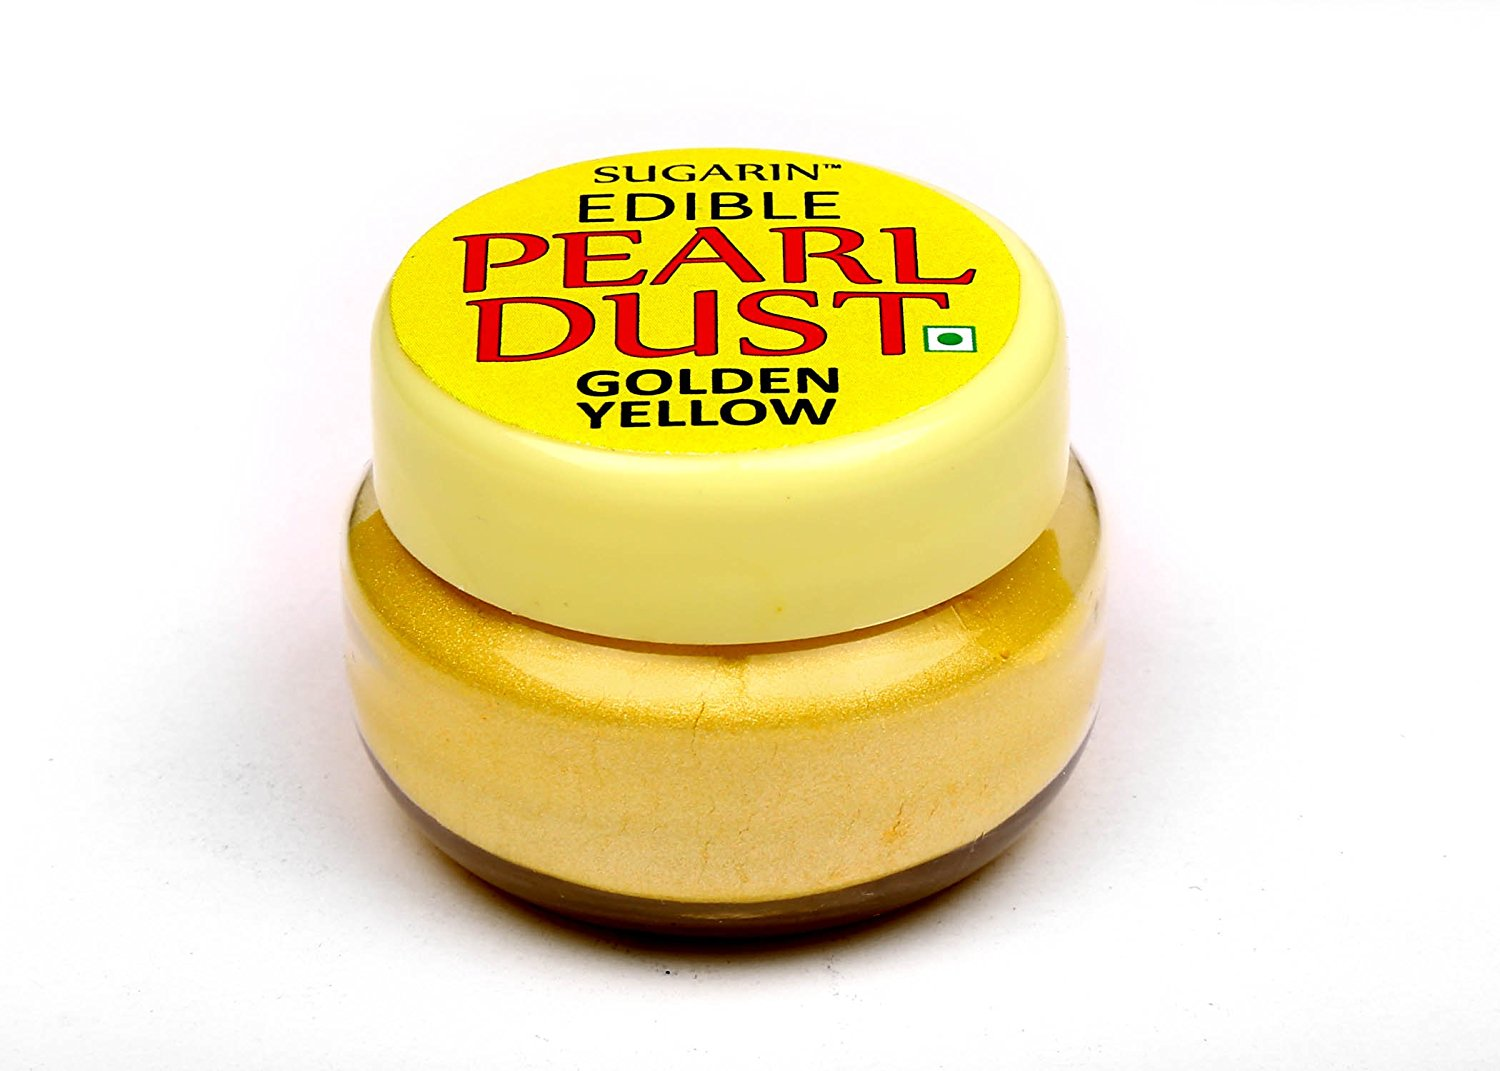 31702 SUGARIN Edible Pearl Dust, Golden Yellow, 4.25 gm